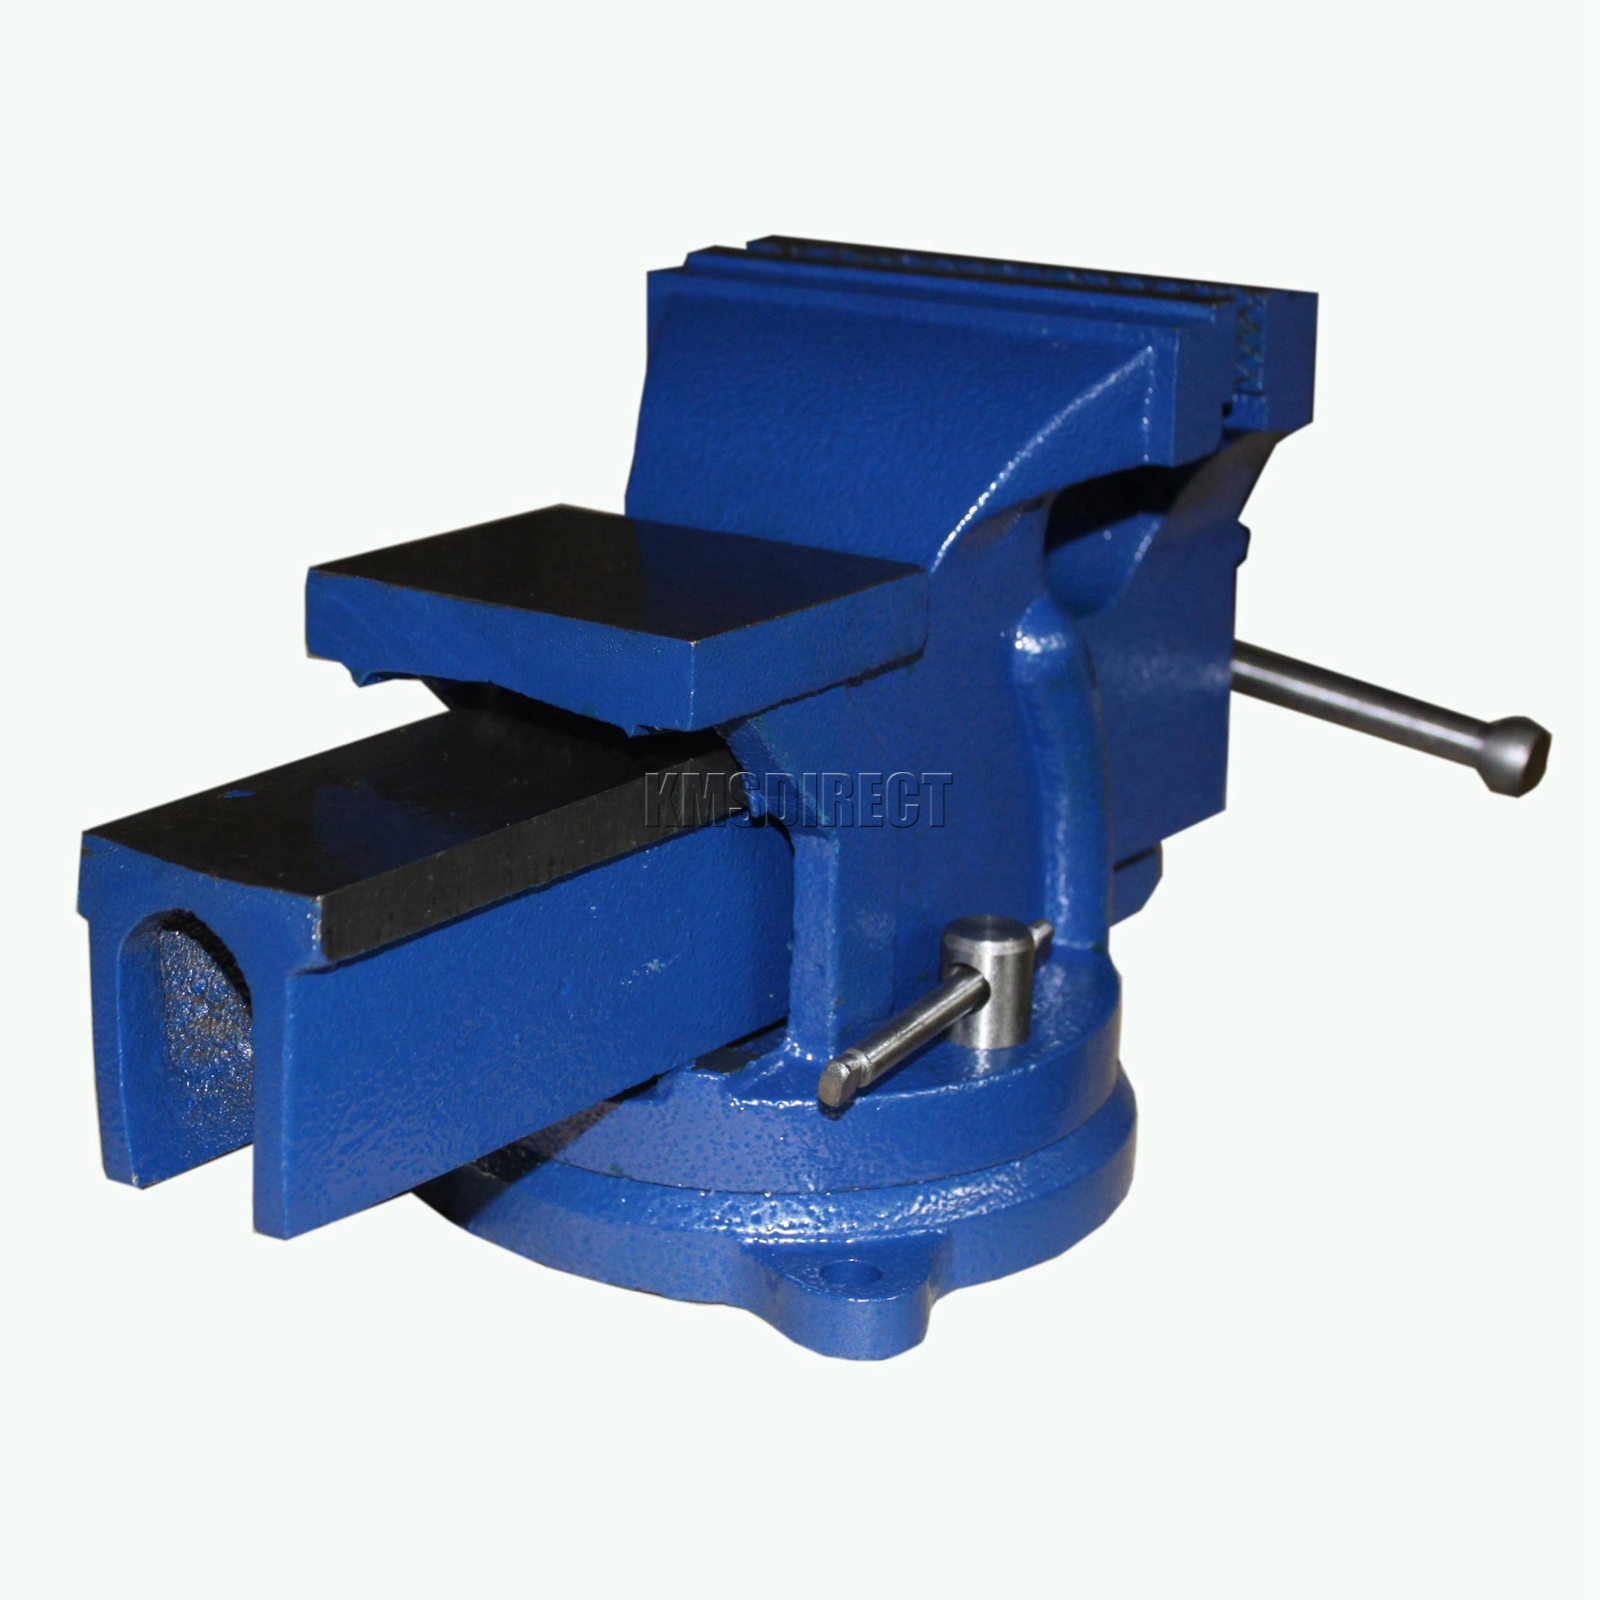 What Is A Bench Vise Used For: FoxHunter Swivel Base Bench Vice Vise Jaw Clamp For